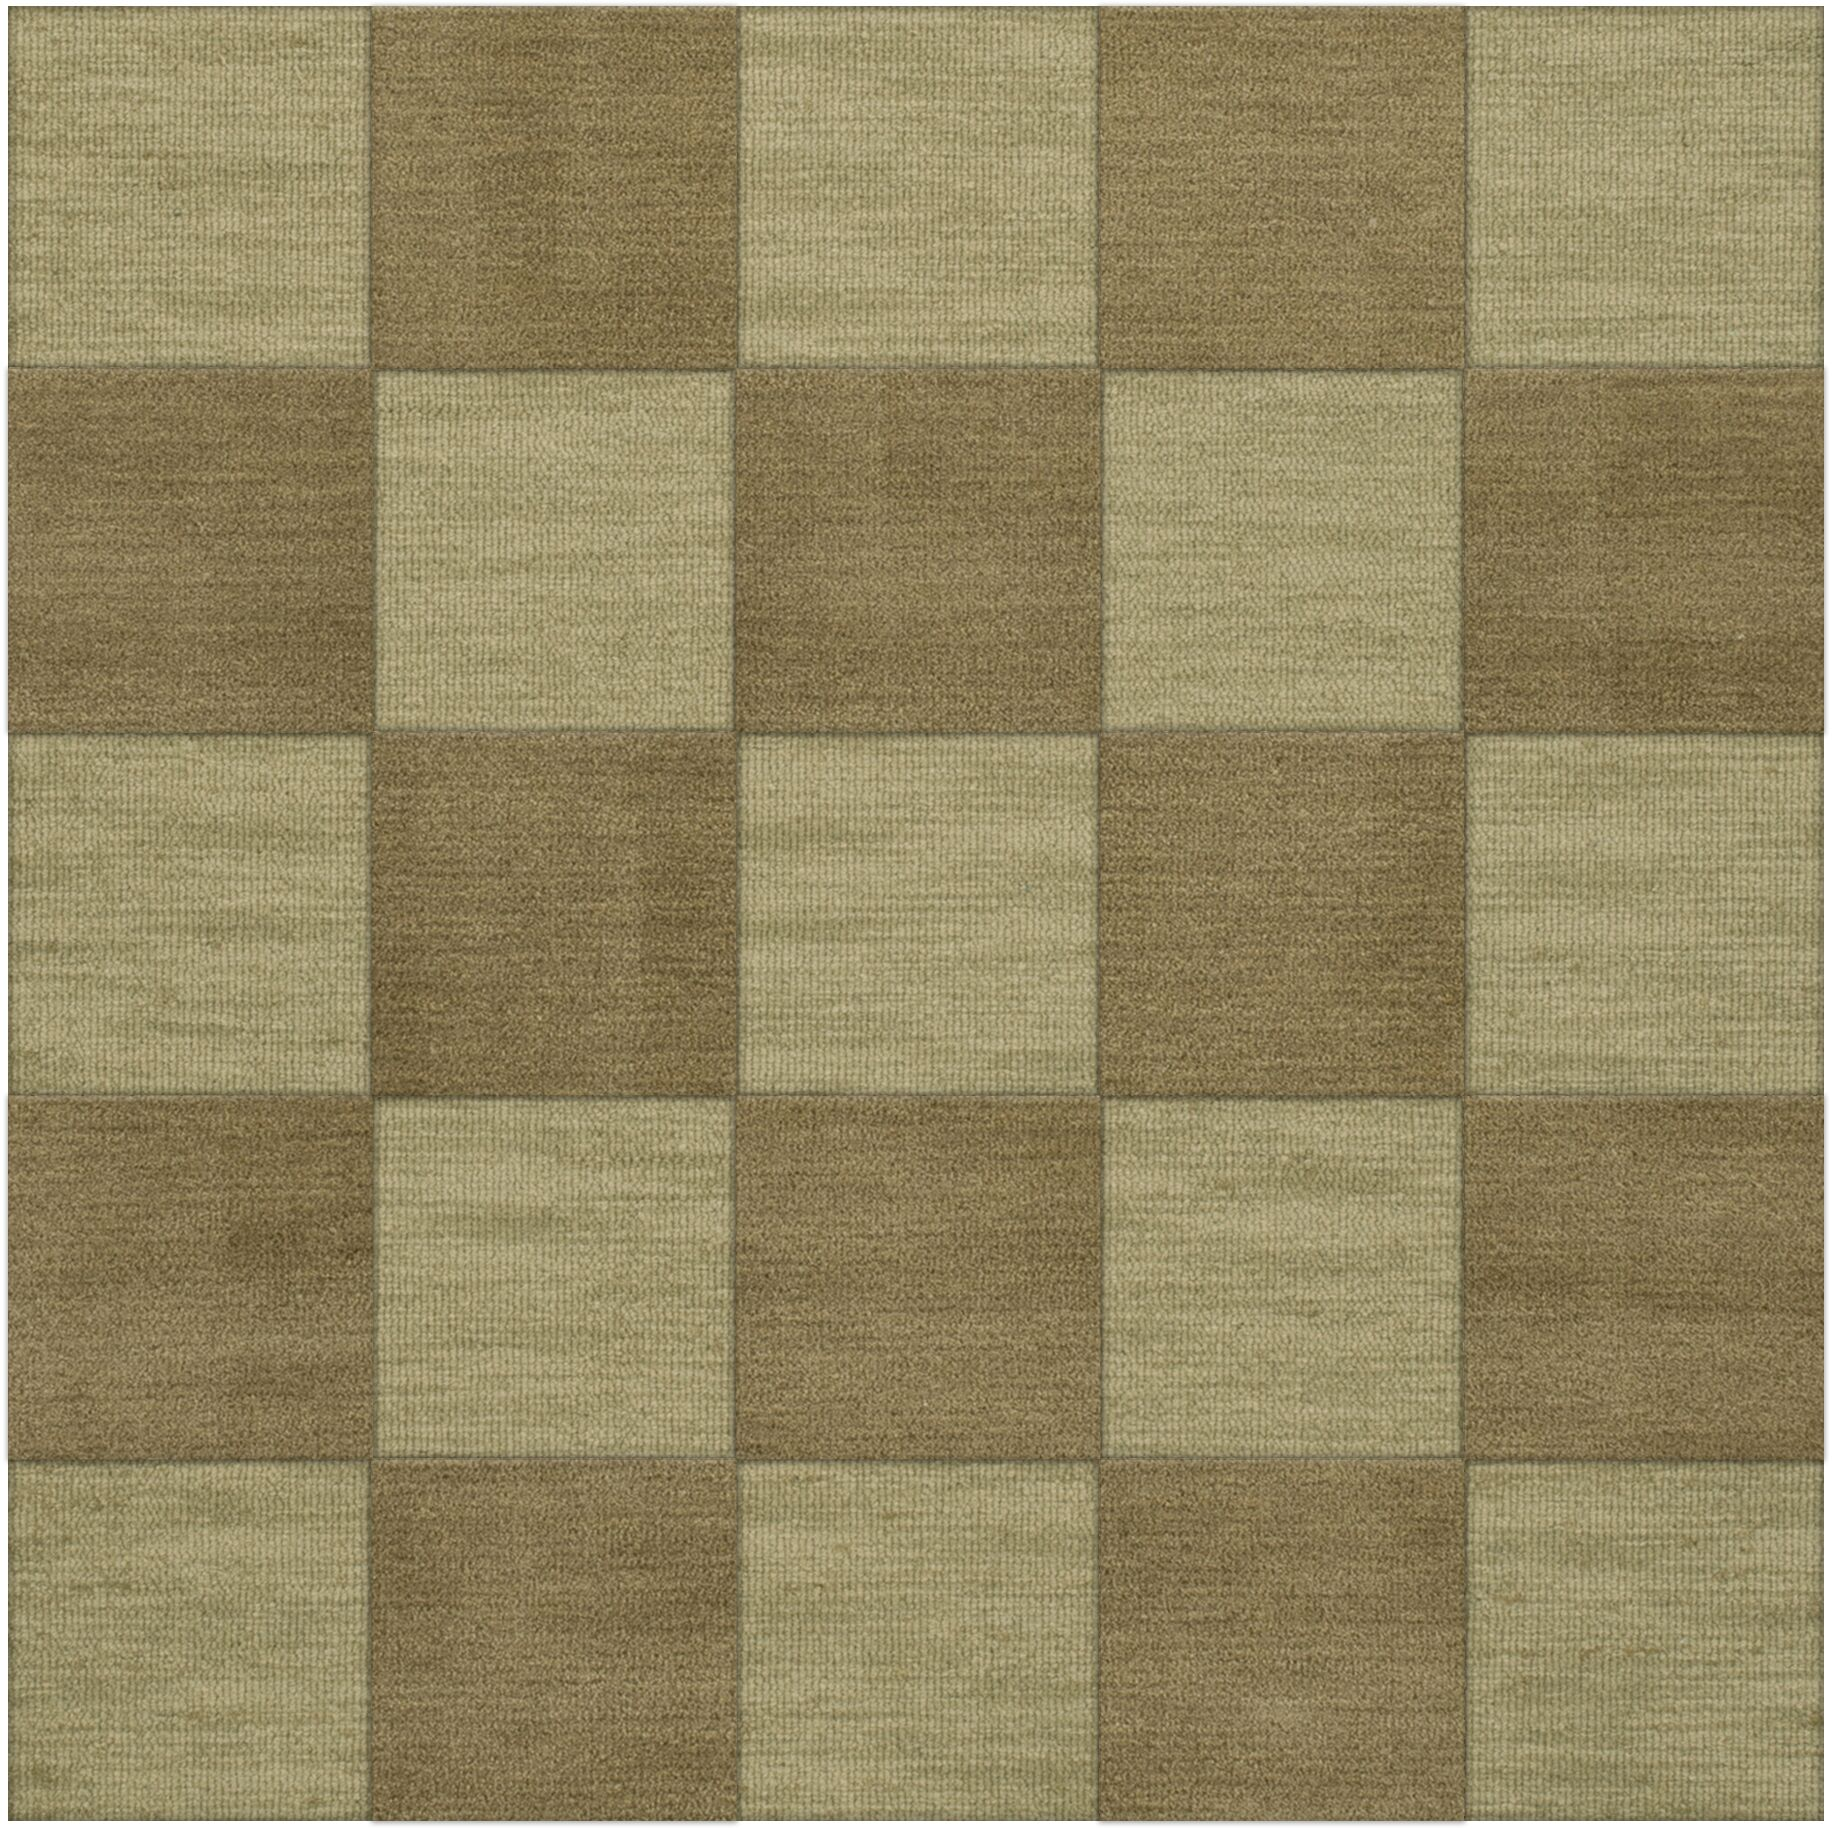 Dover Tufted Wool Marsh Area Rug Rug Size: Square 4'